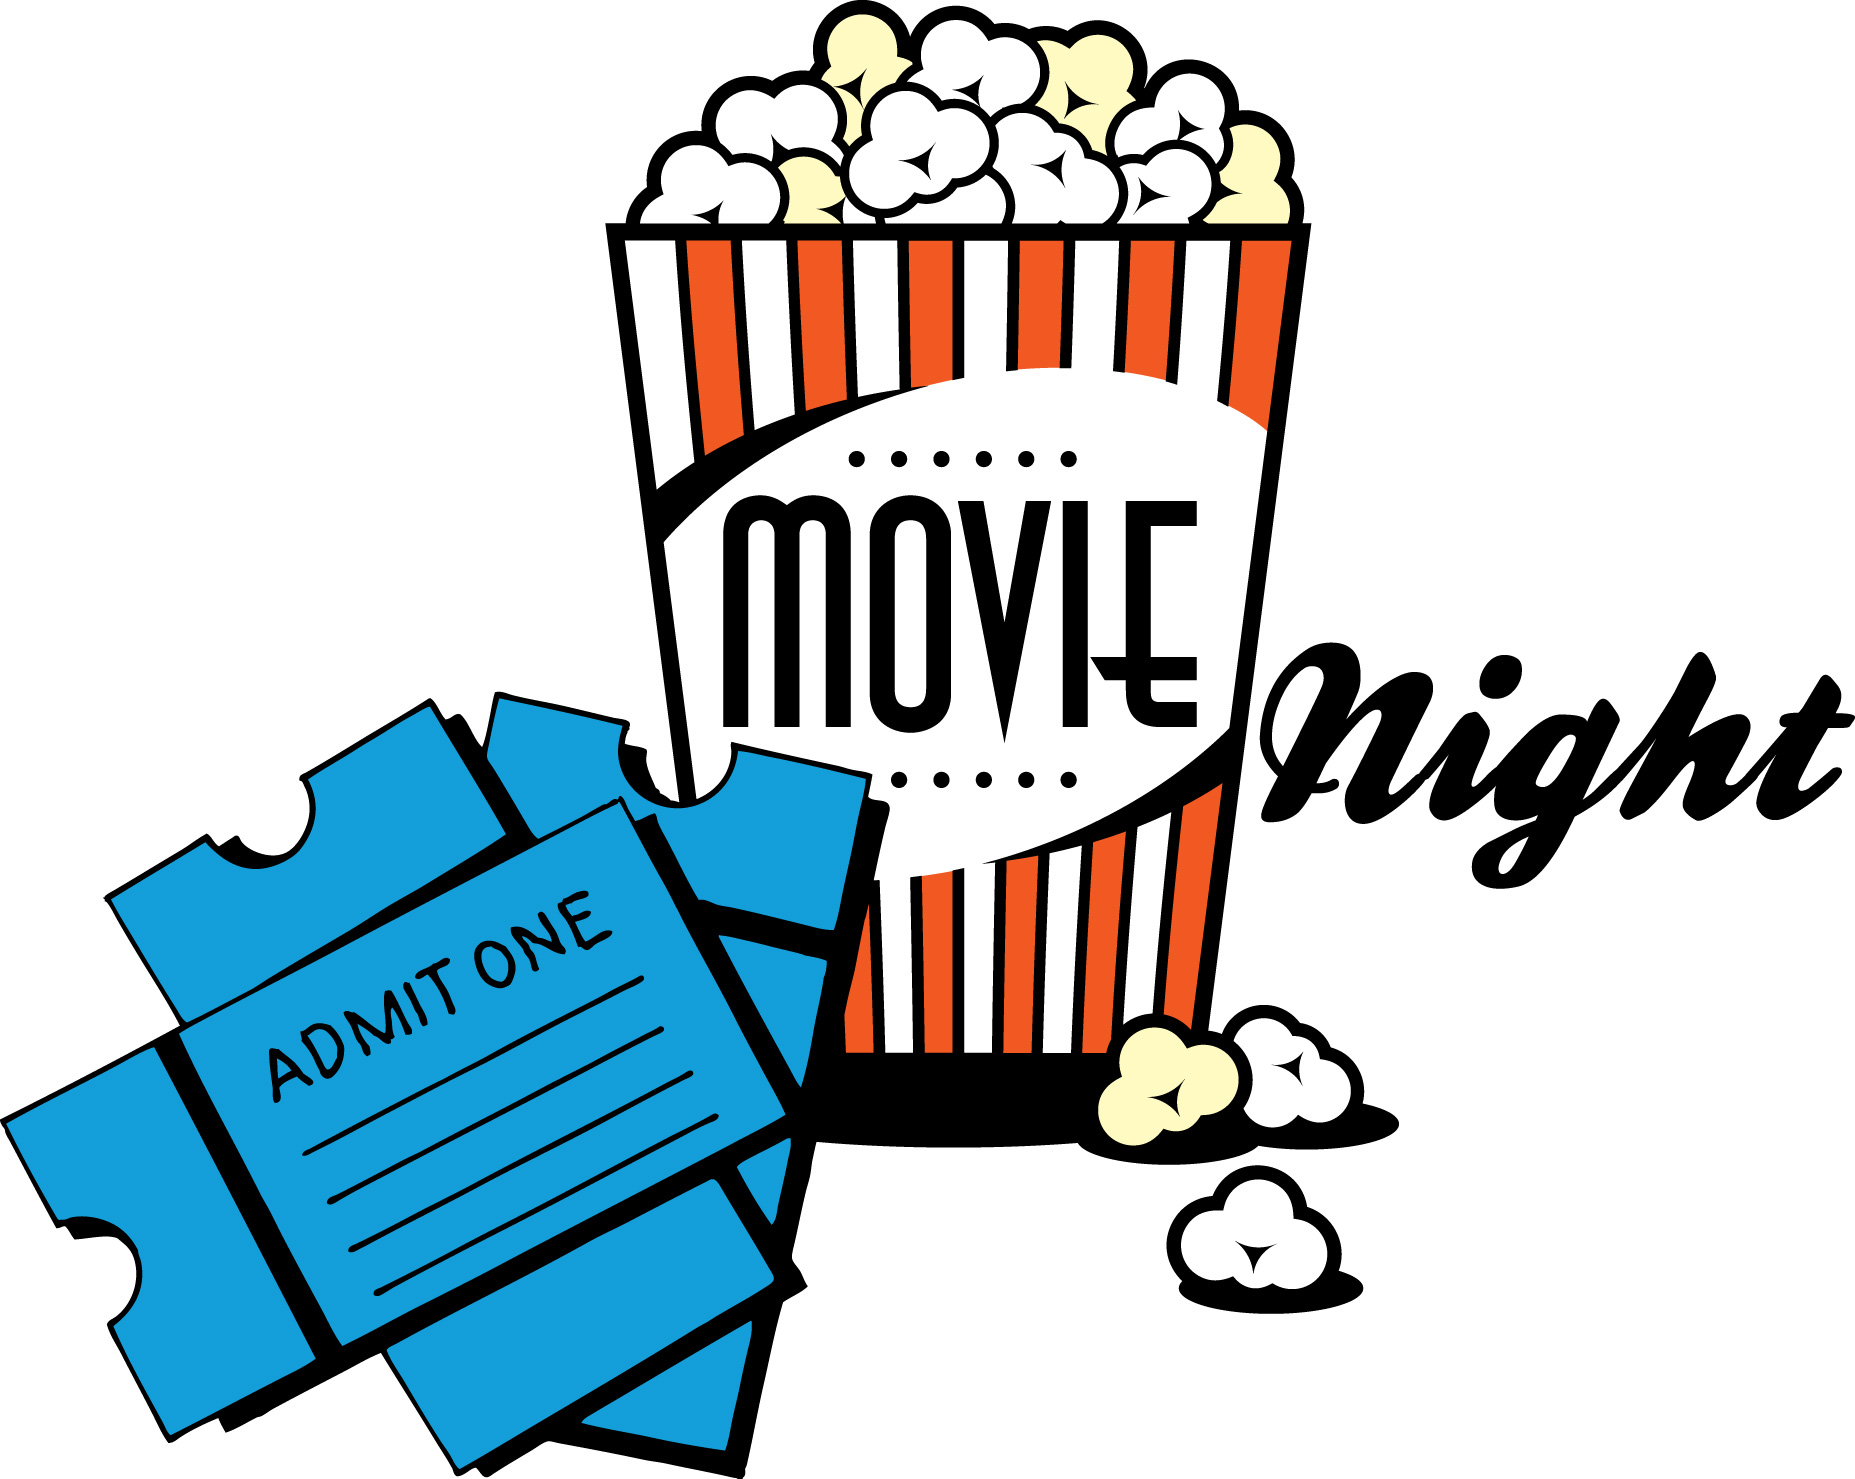 Night clipart cartoon Movie%20night%20popcorn%20clipart Night Clipart Images Free